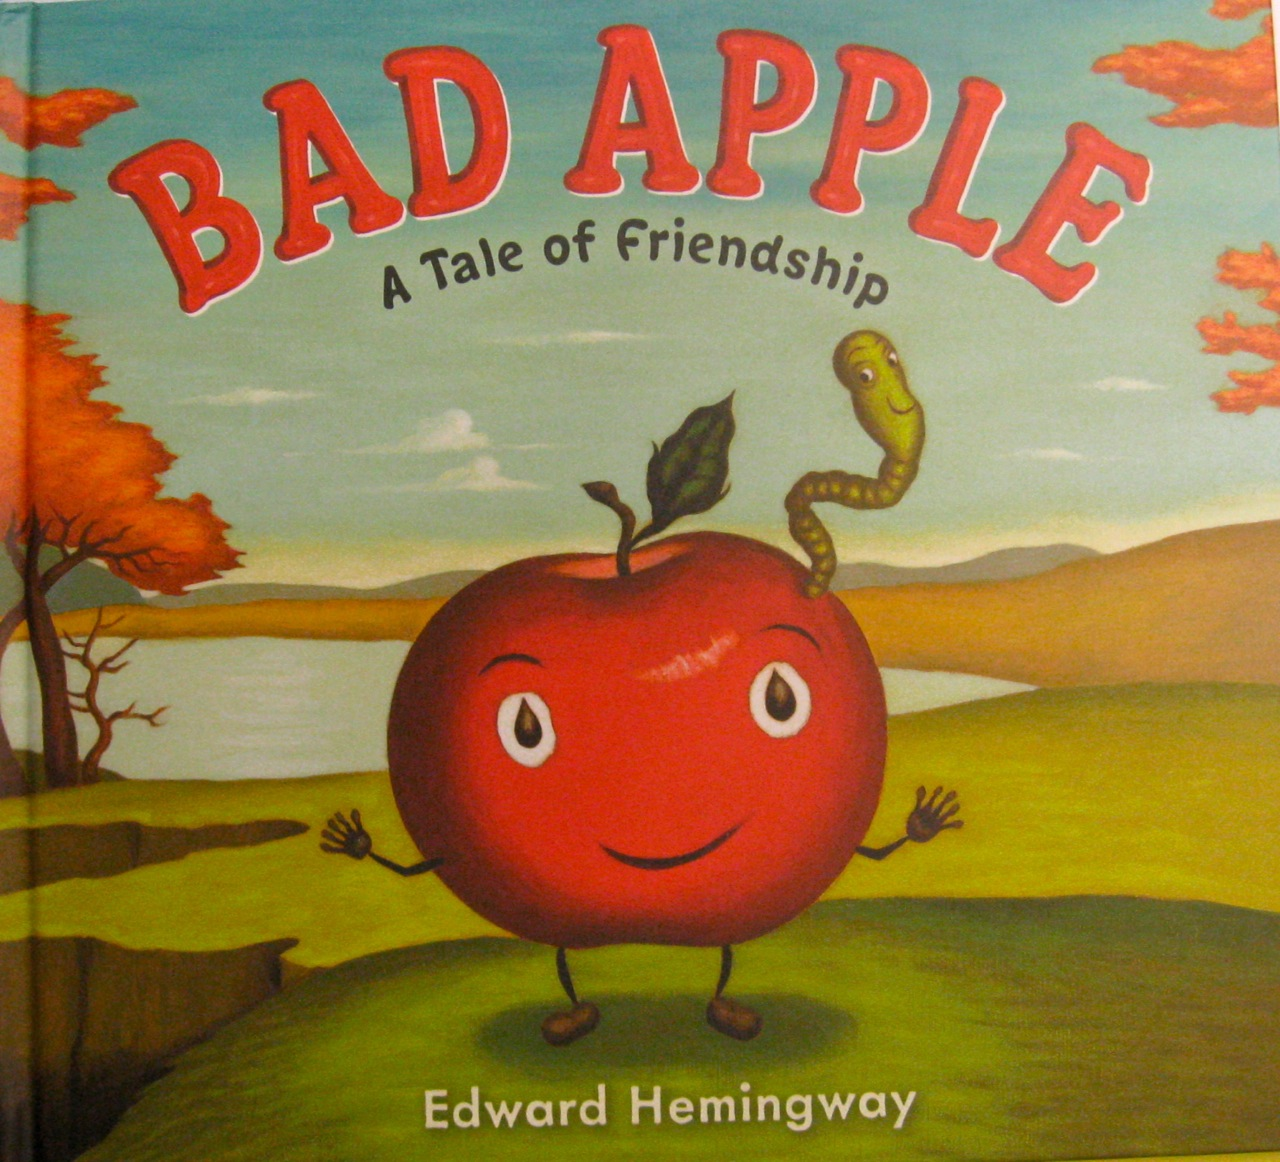 Bad Apple A Tale of Friendship